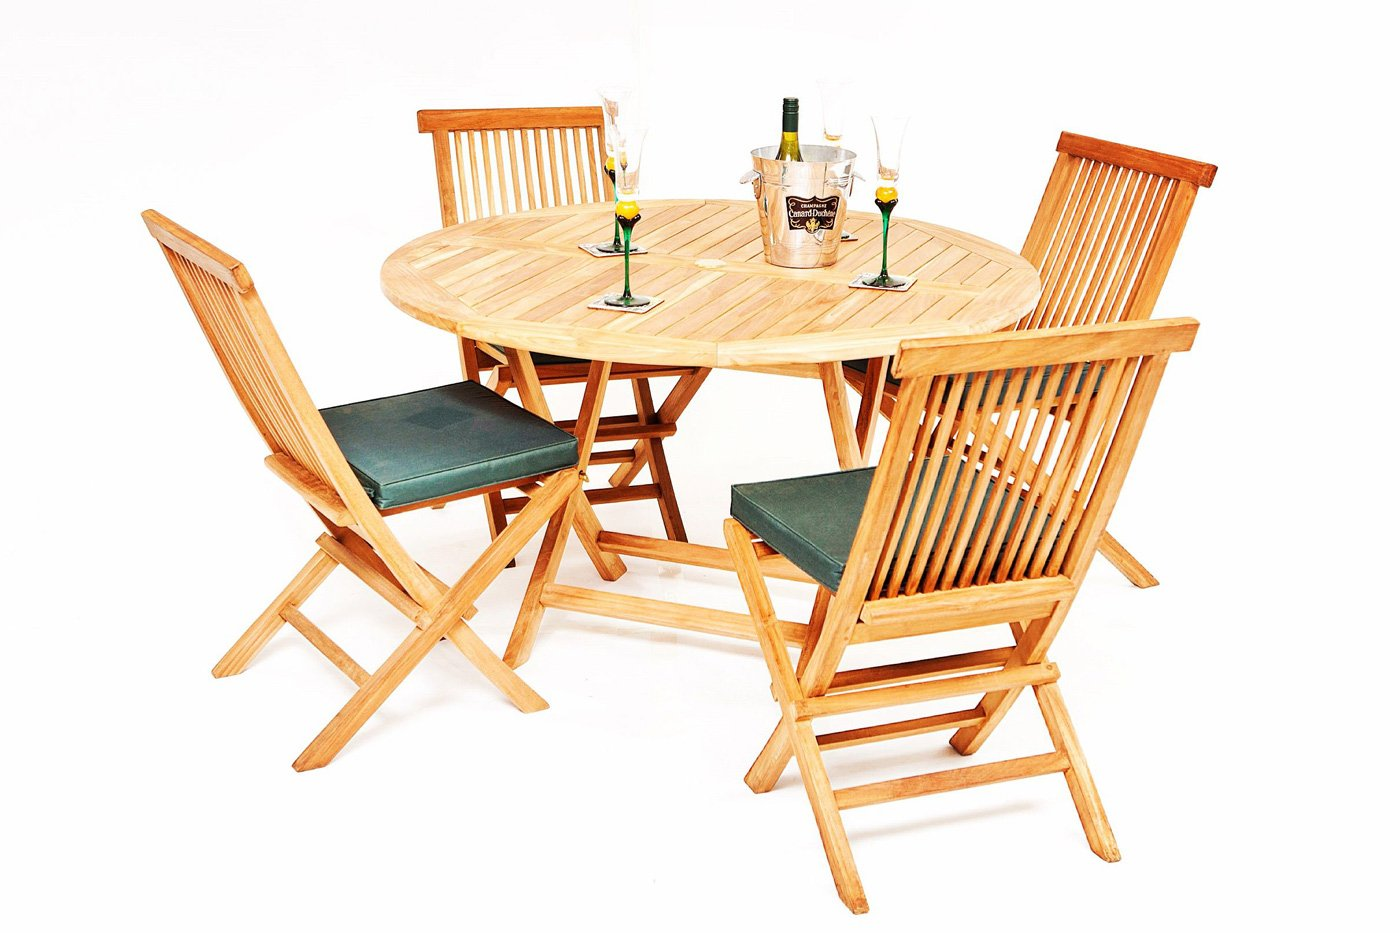 5121a2a19a11 The Pocklington 4 Seater Teak Garden Table & Chairs Set | Garden ...